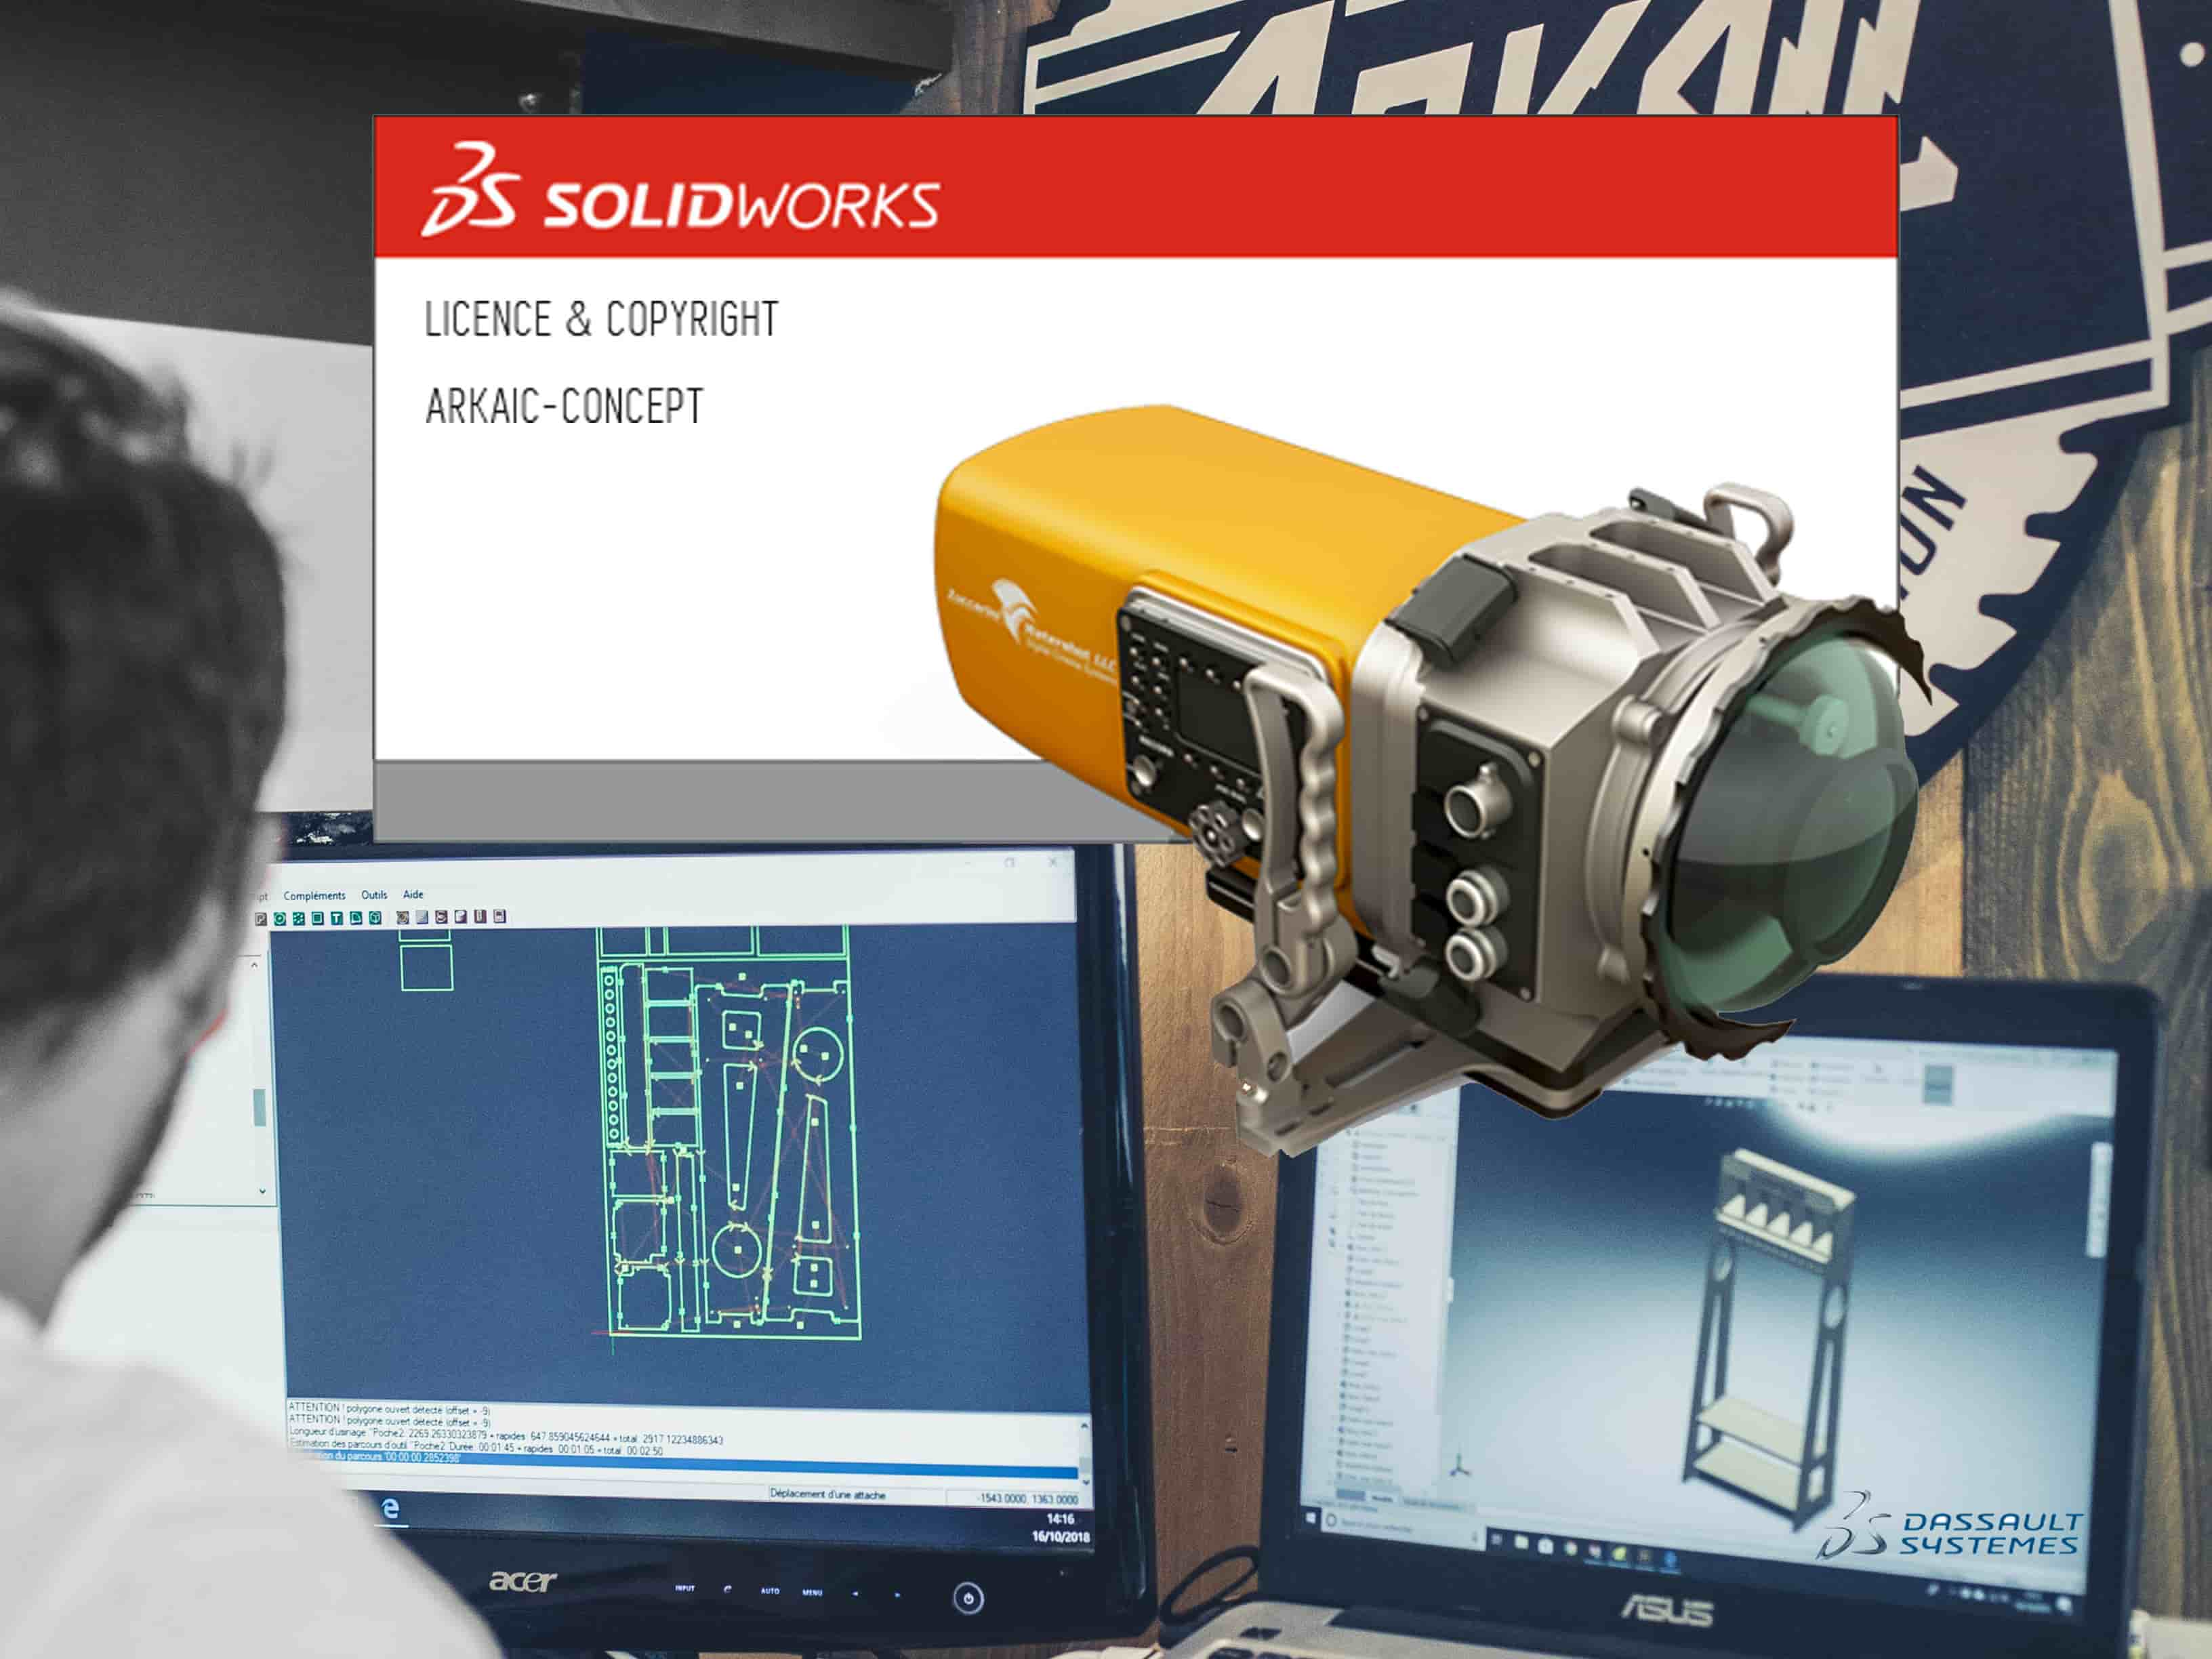 conception-3d-design-arkaic-concept-solidworks-lyon-caluire-creation-logiciel Solidworks